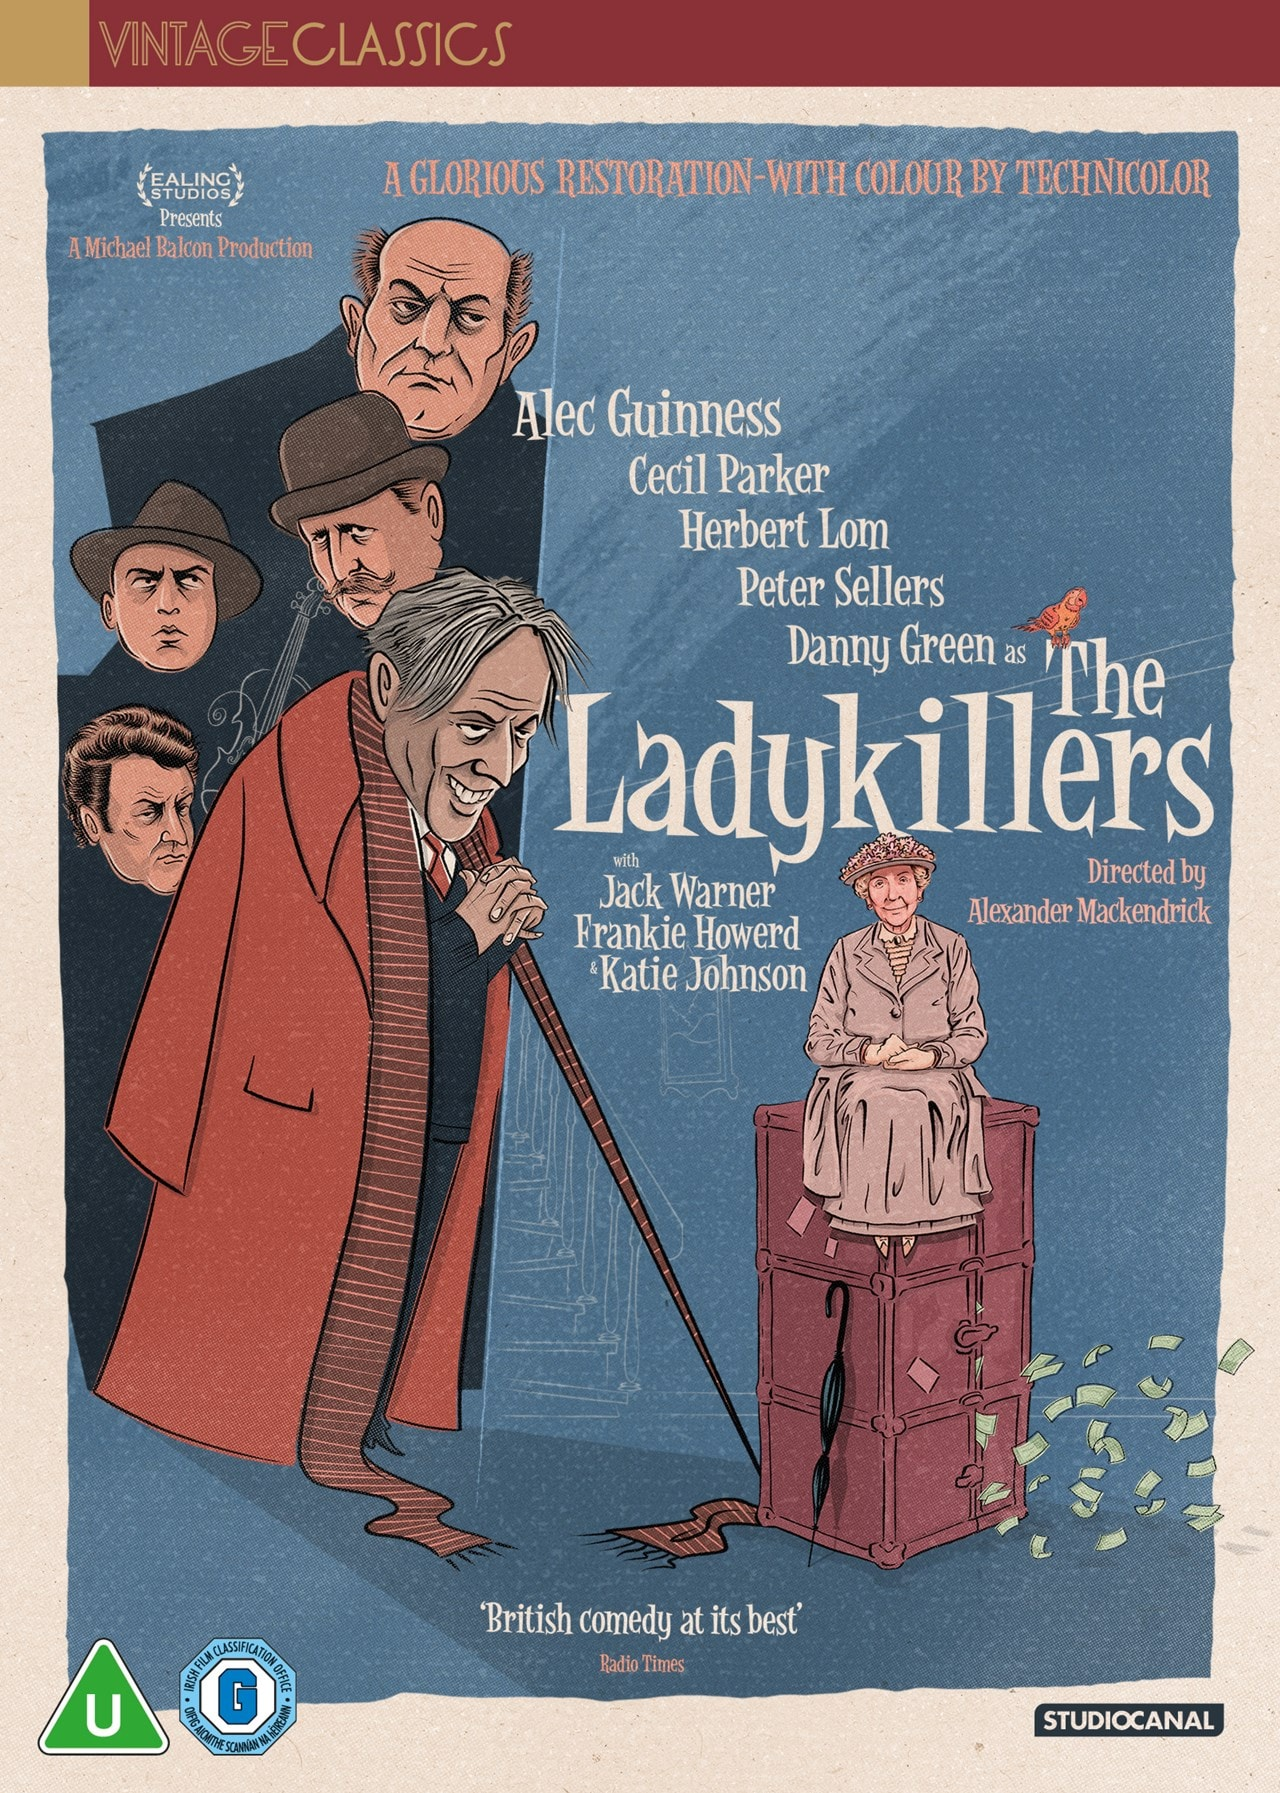 The Ladykillers - 1